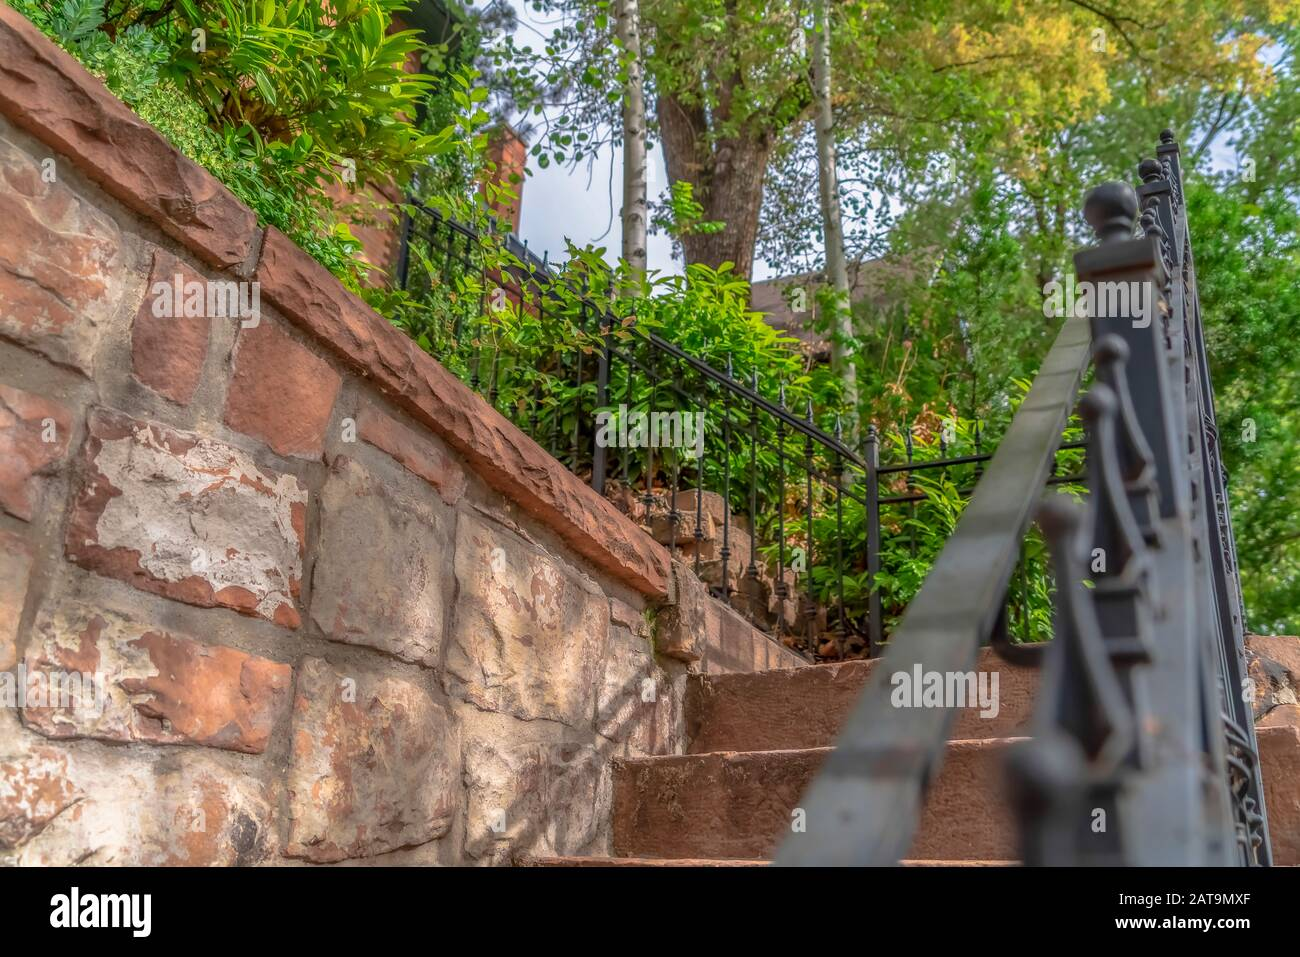 Close Up Of Outdoor Stairs With Black Metal Handrail Against A Stone Wall Stock Photo Alamy